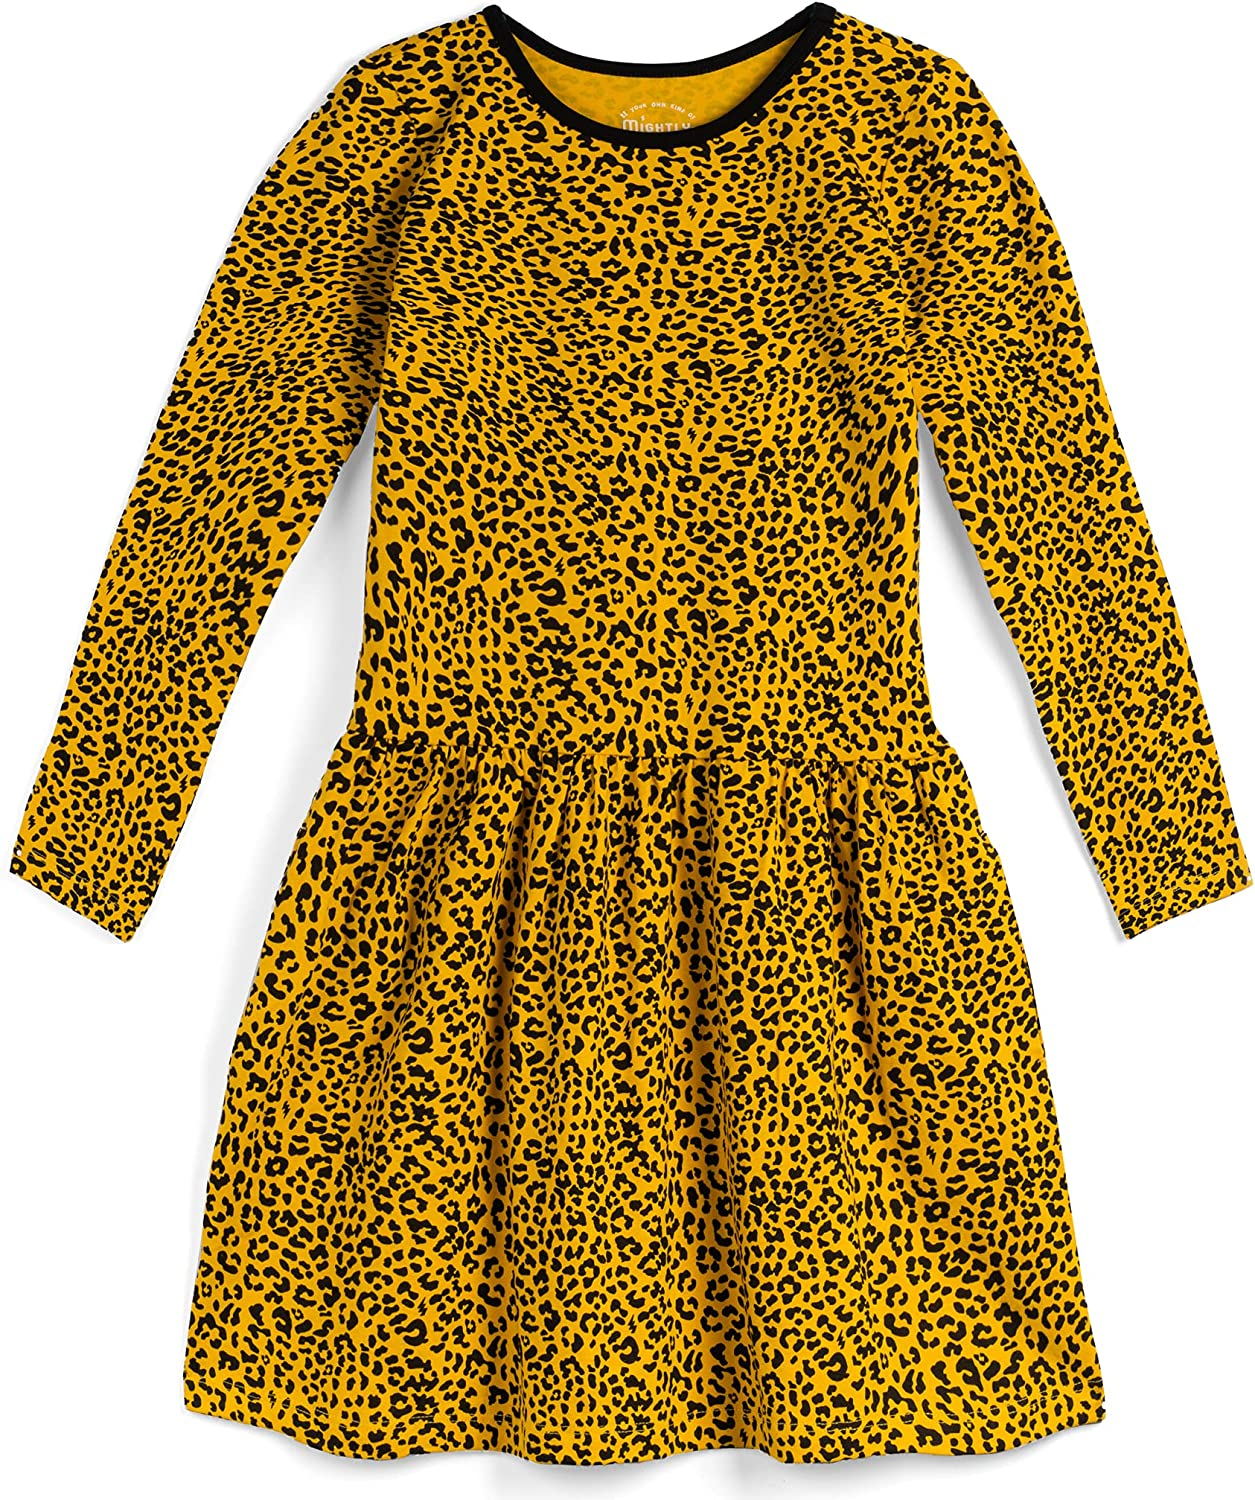 Mightly Girls' Long Sleeve Tiered Dress with Pockets- Organic Cotton Fair Trade Certified Toddler and Kids Clothes